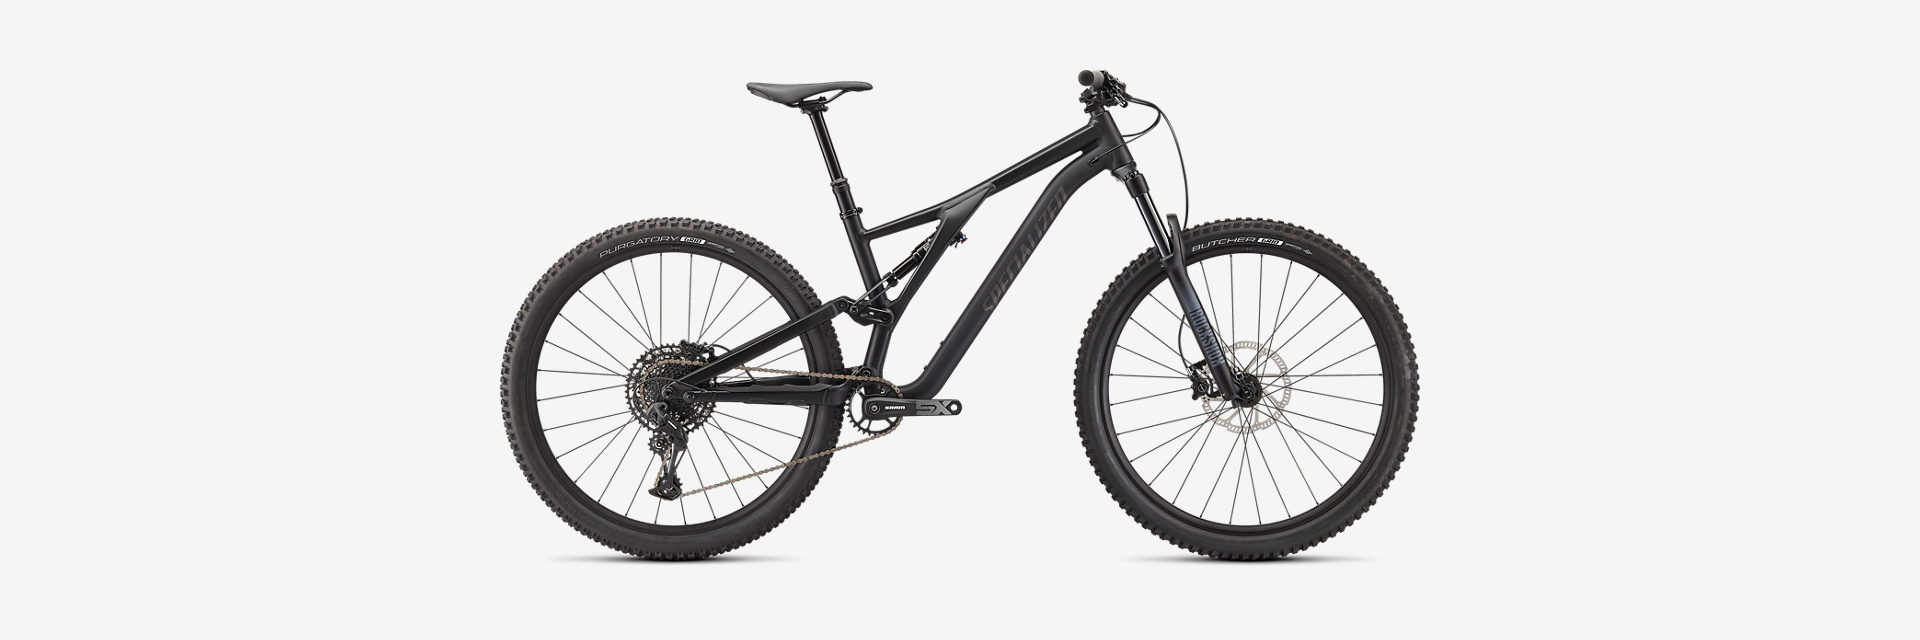 21 Stumpjumper Alloy, Black/Smoke S3